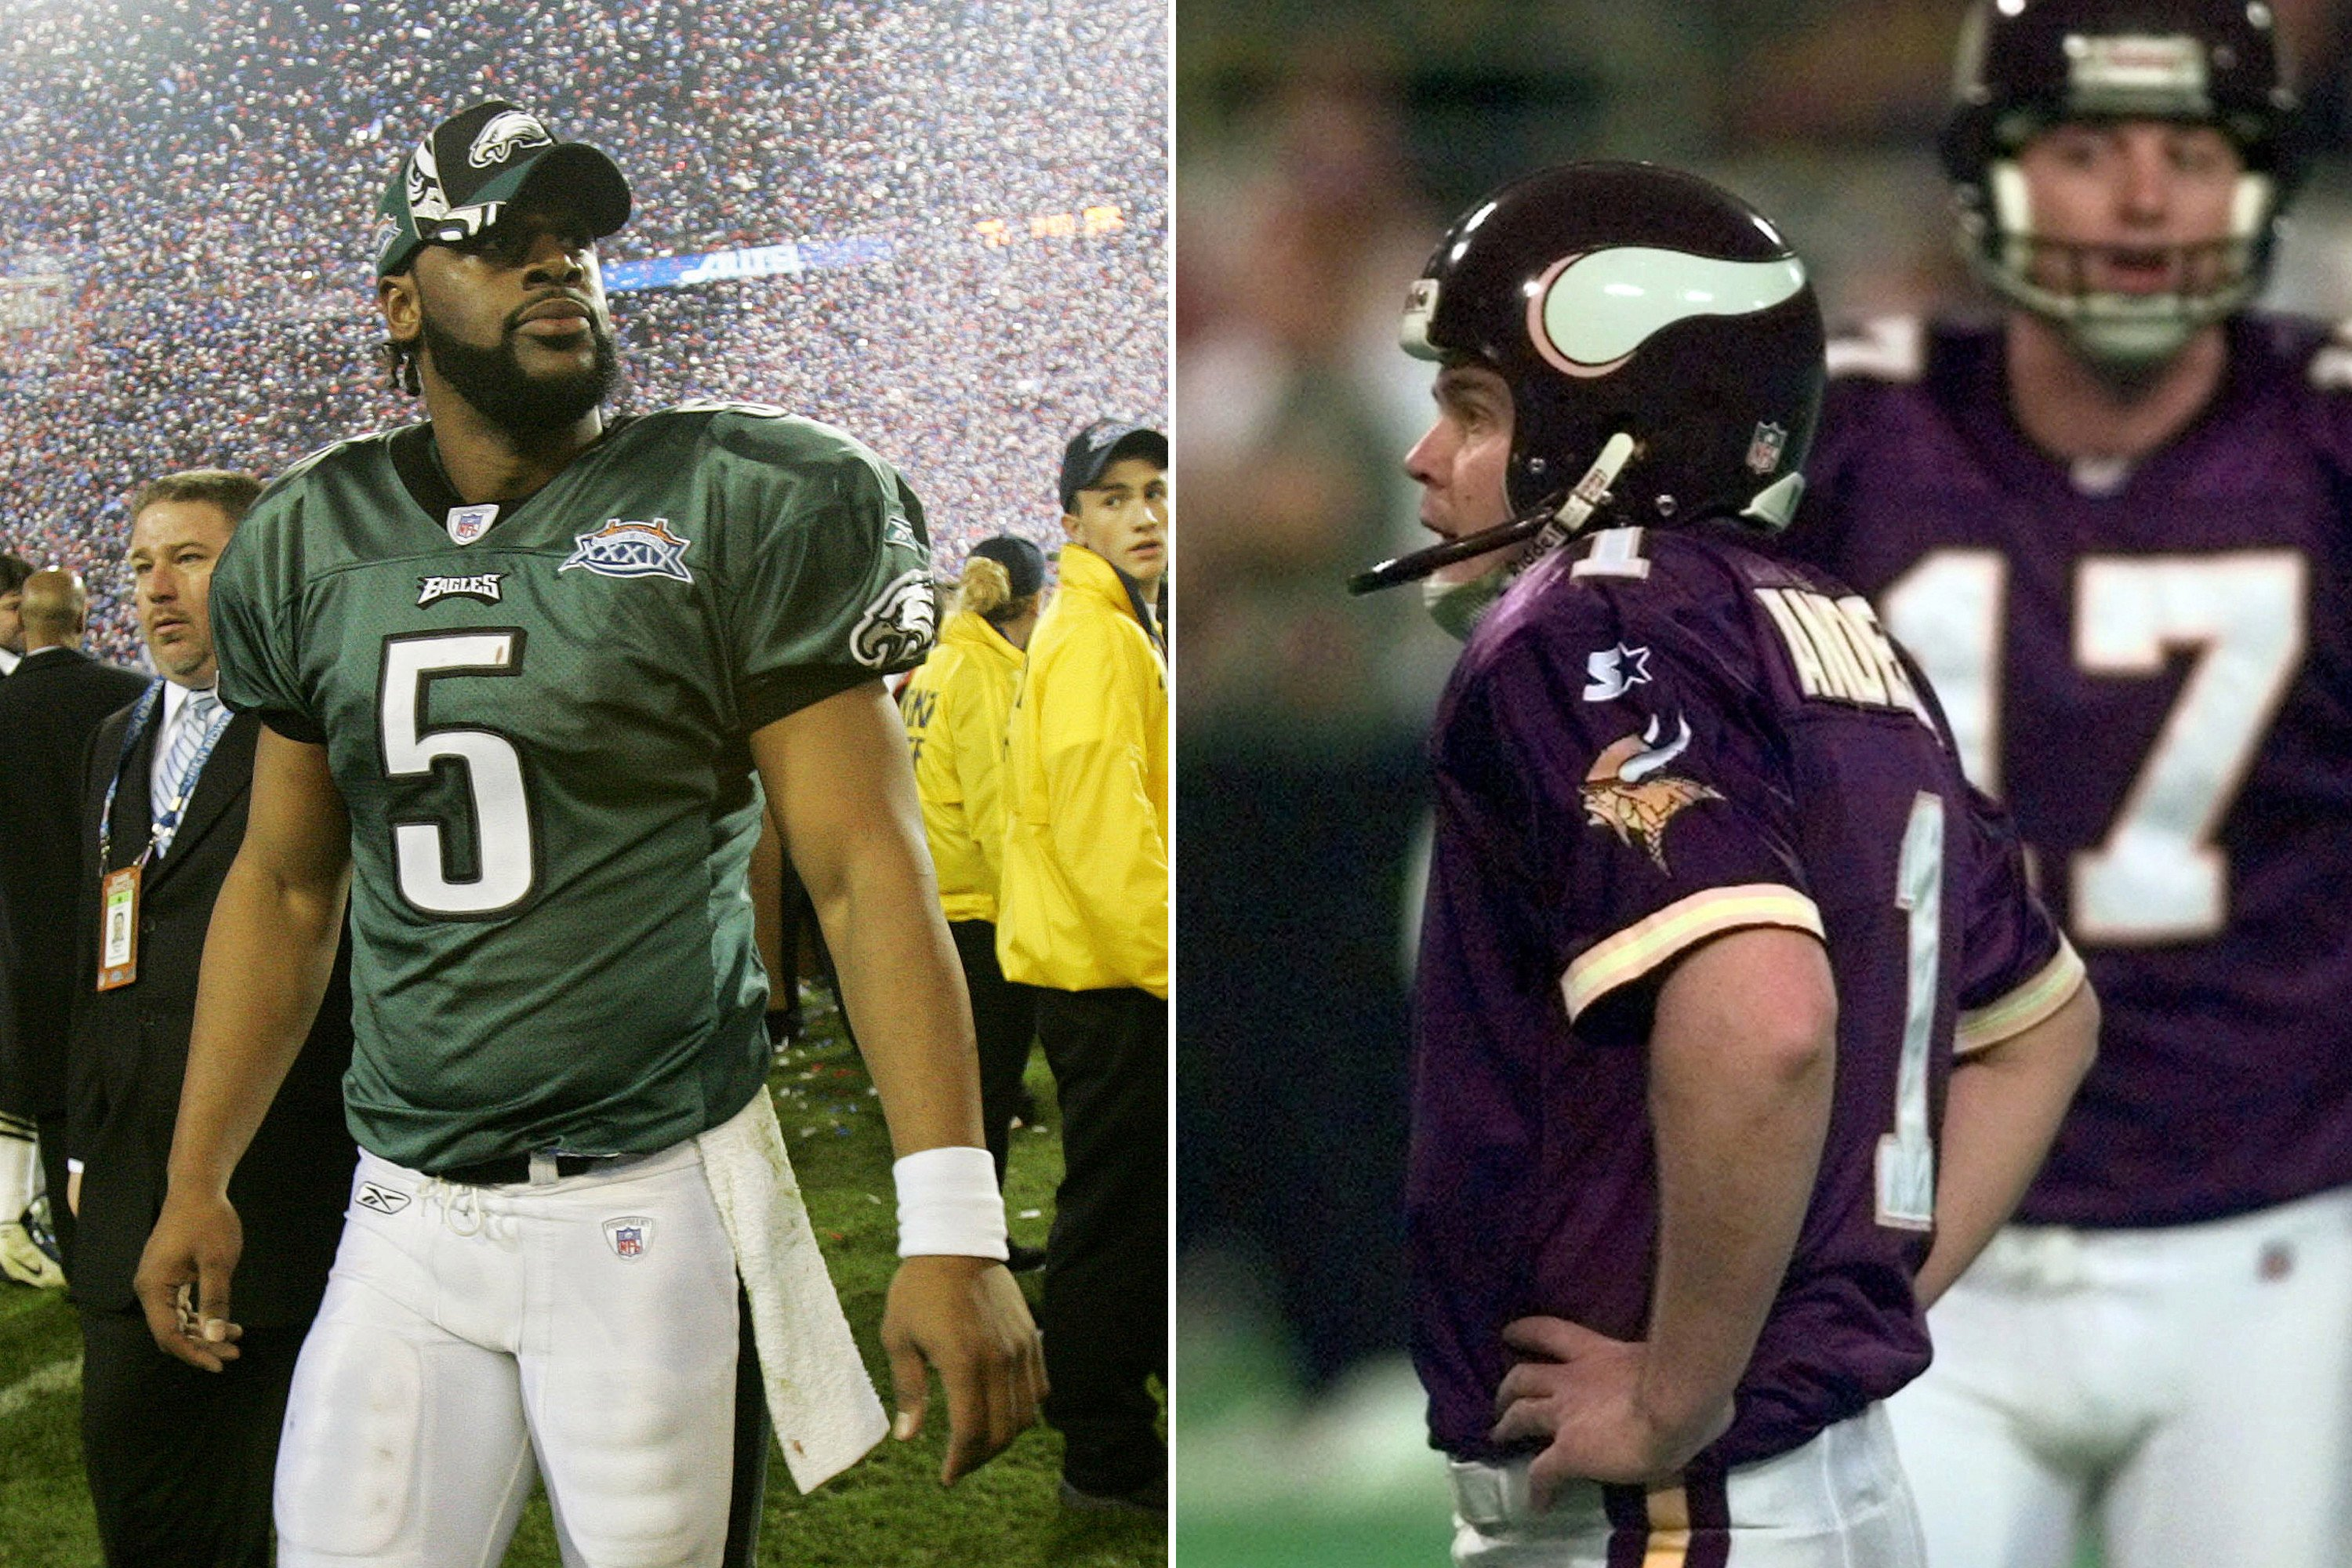 Eagles, Vikings connected by history of unbelievable pain